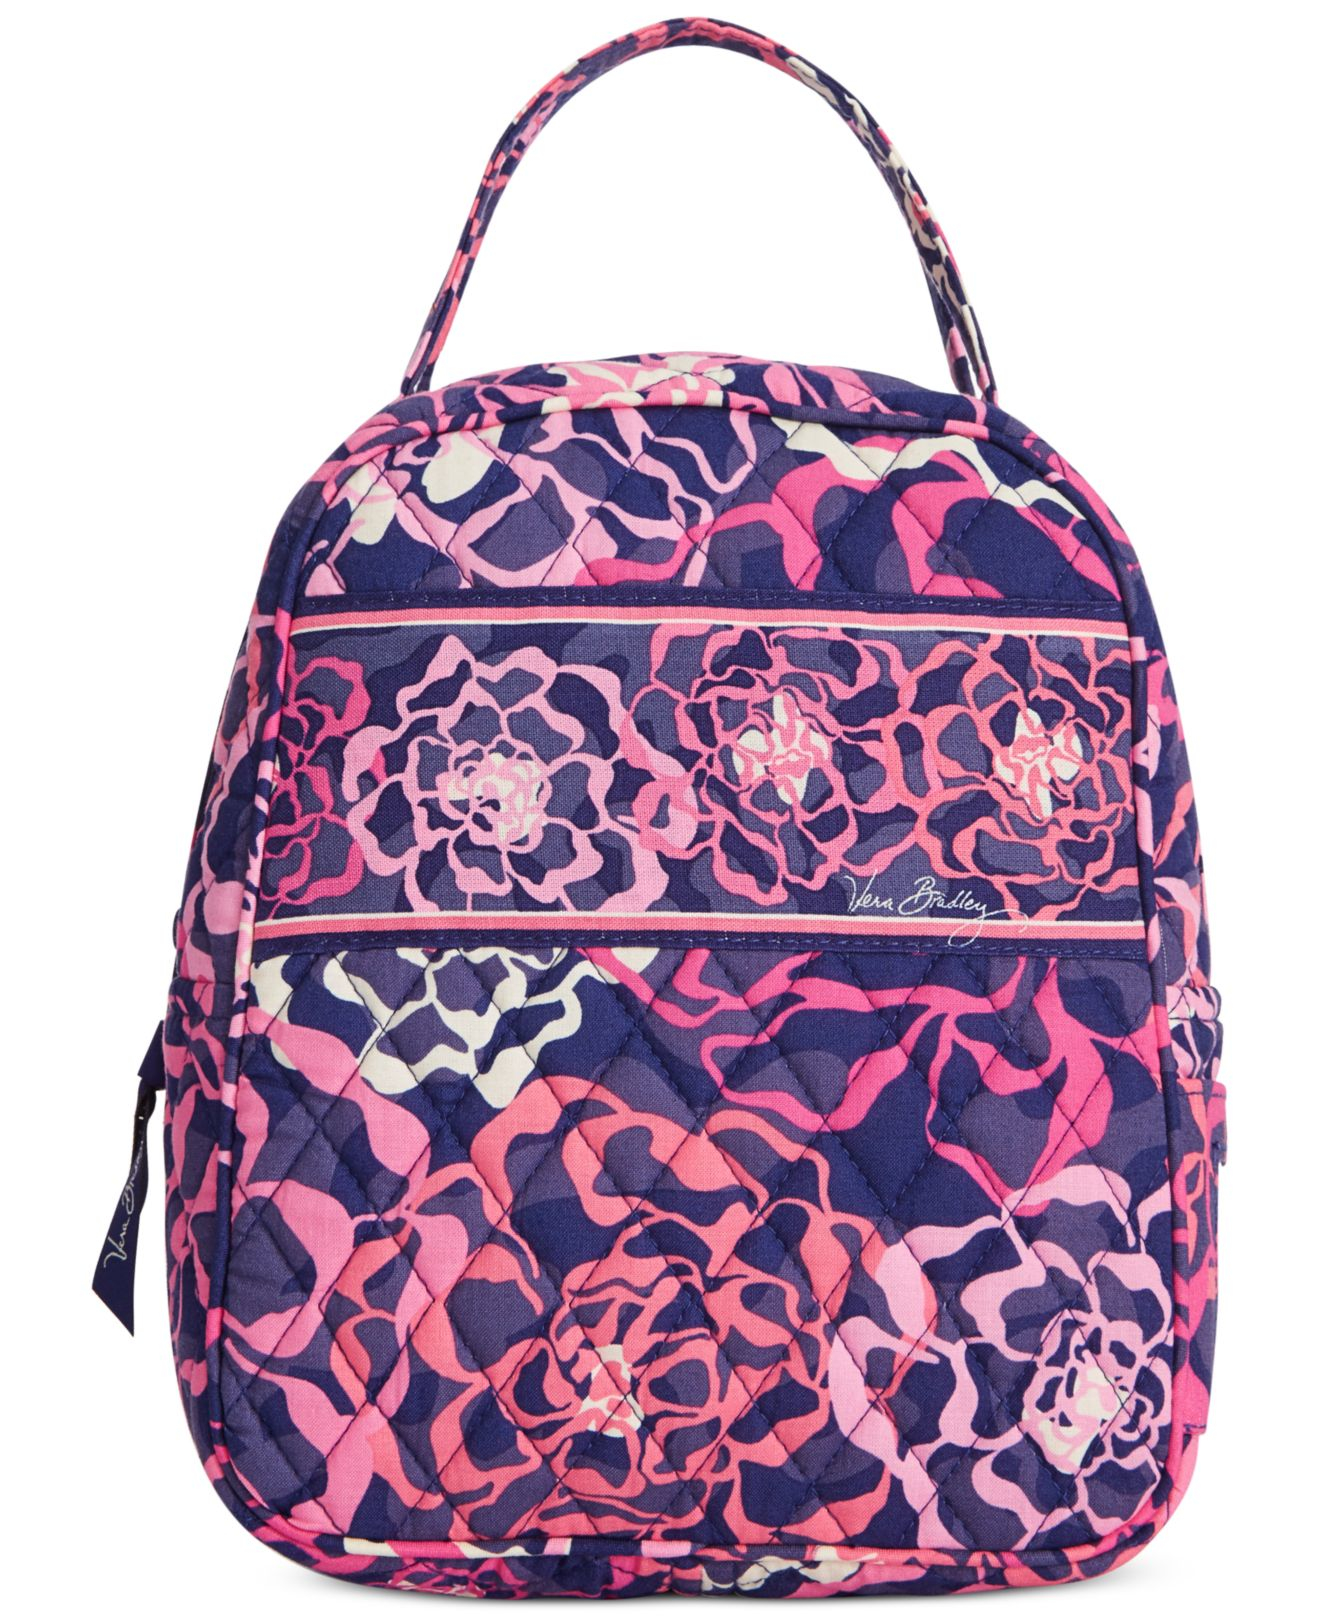 Vera bradley Lunch Bunch Bag in Pink